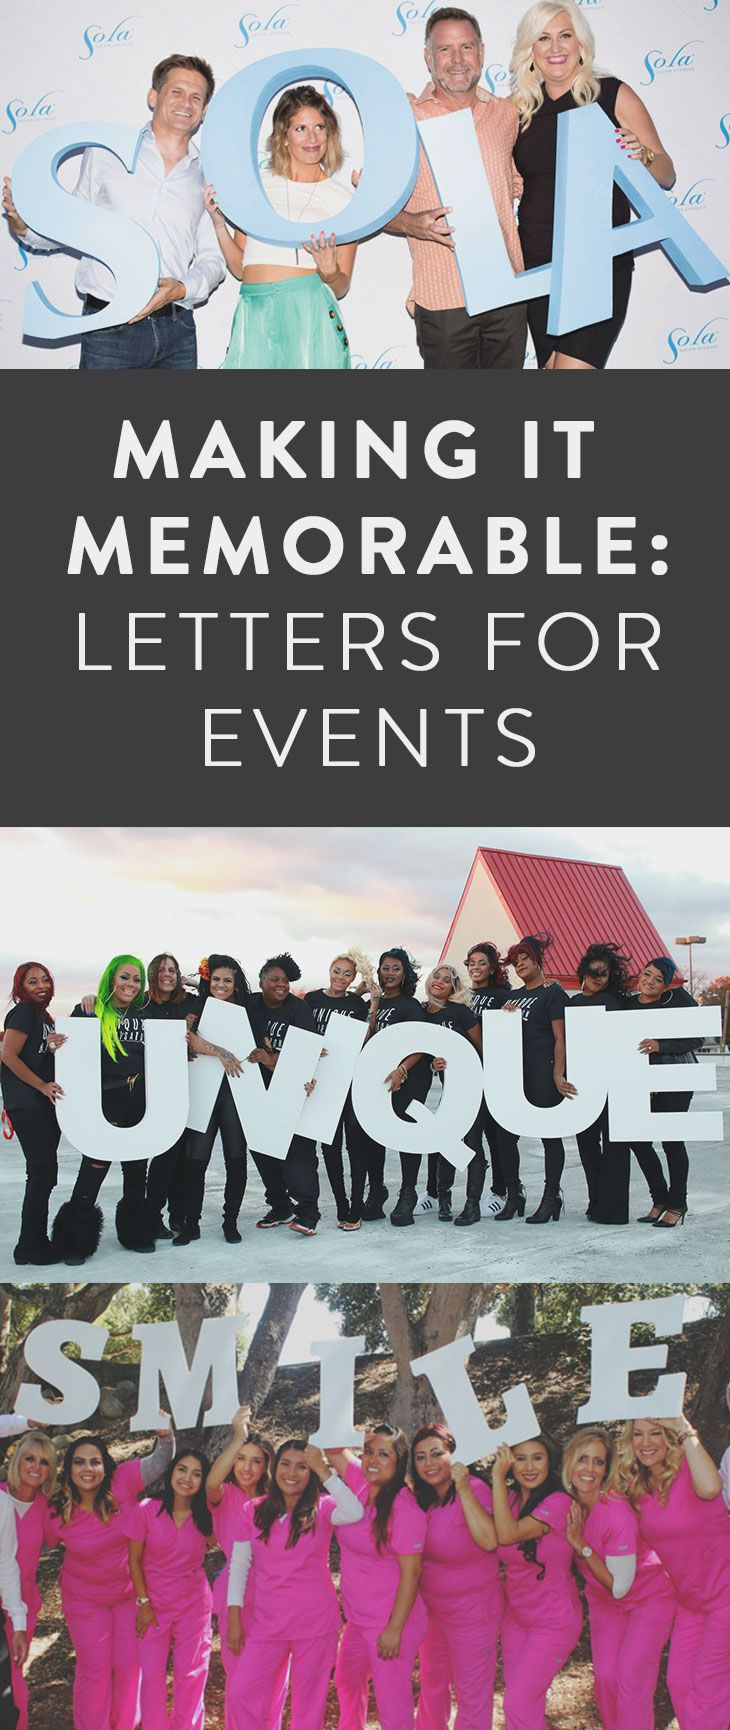 Making It Memorable Letters for Events 12